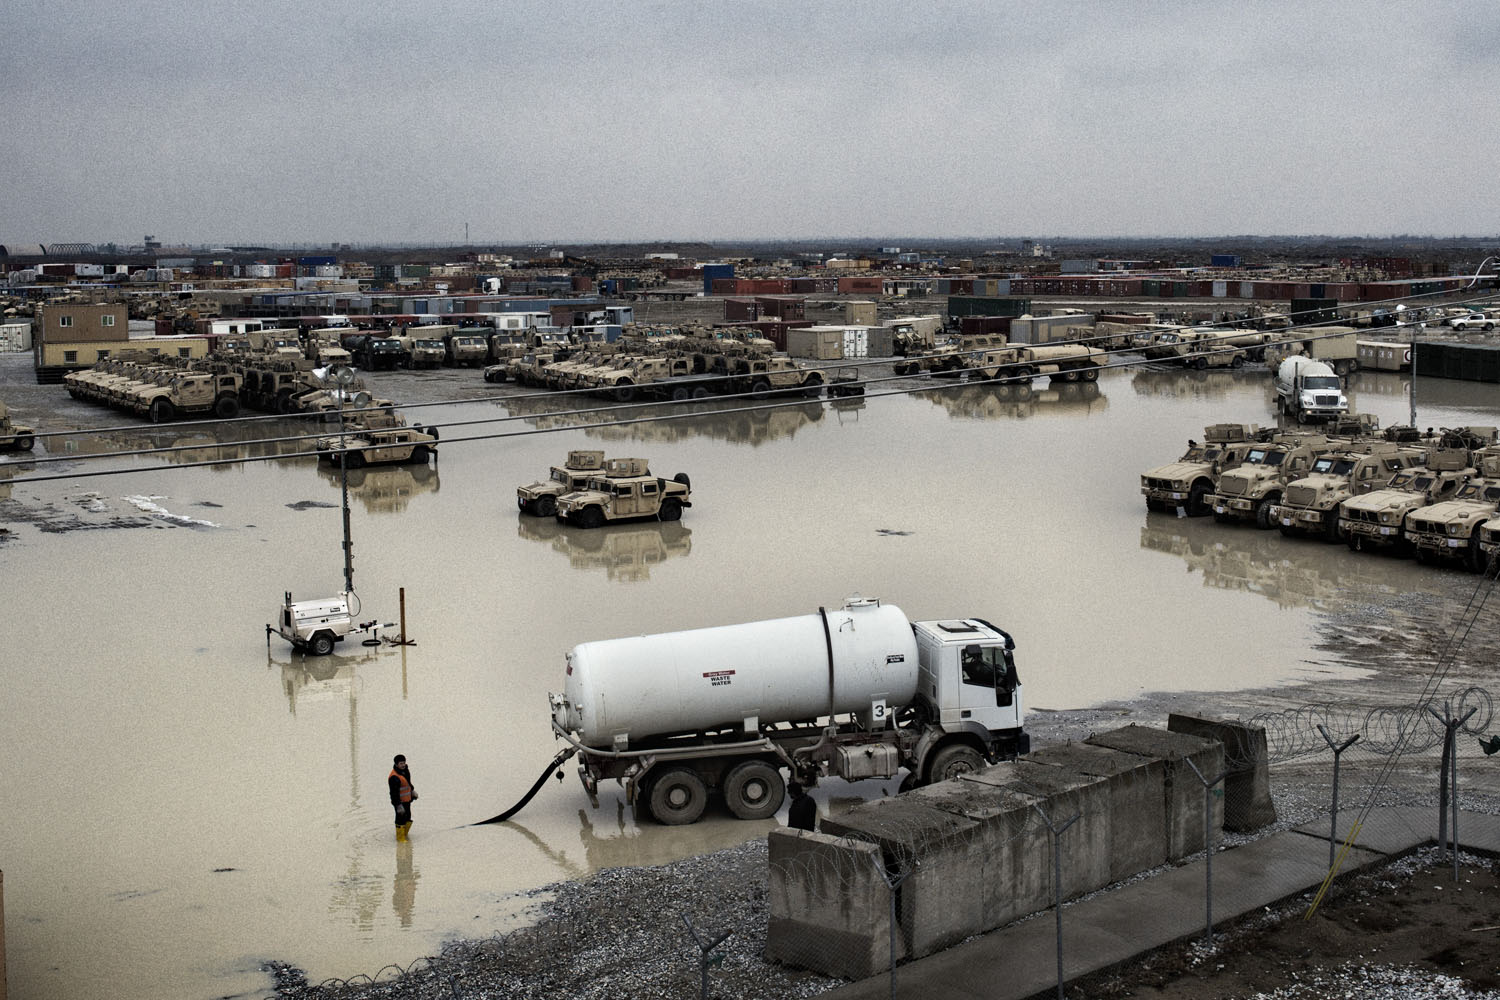 Civilian contractors work to drain a large puddle following a January rain at Bagram. The yard holds armored combat vehicles that have been inspected and processed in preparation for shipment to the United States.